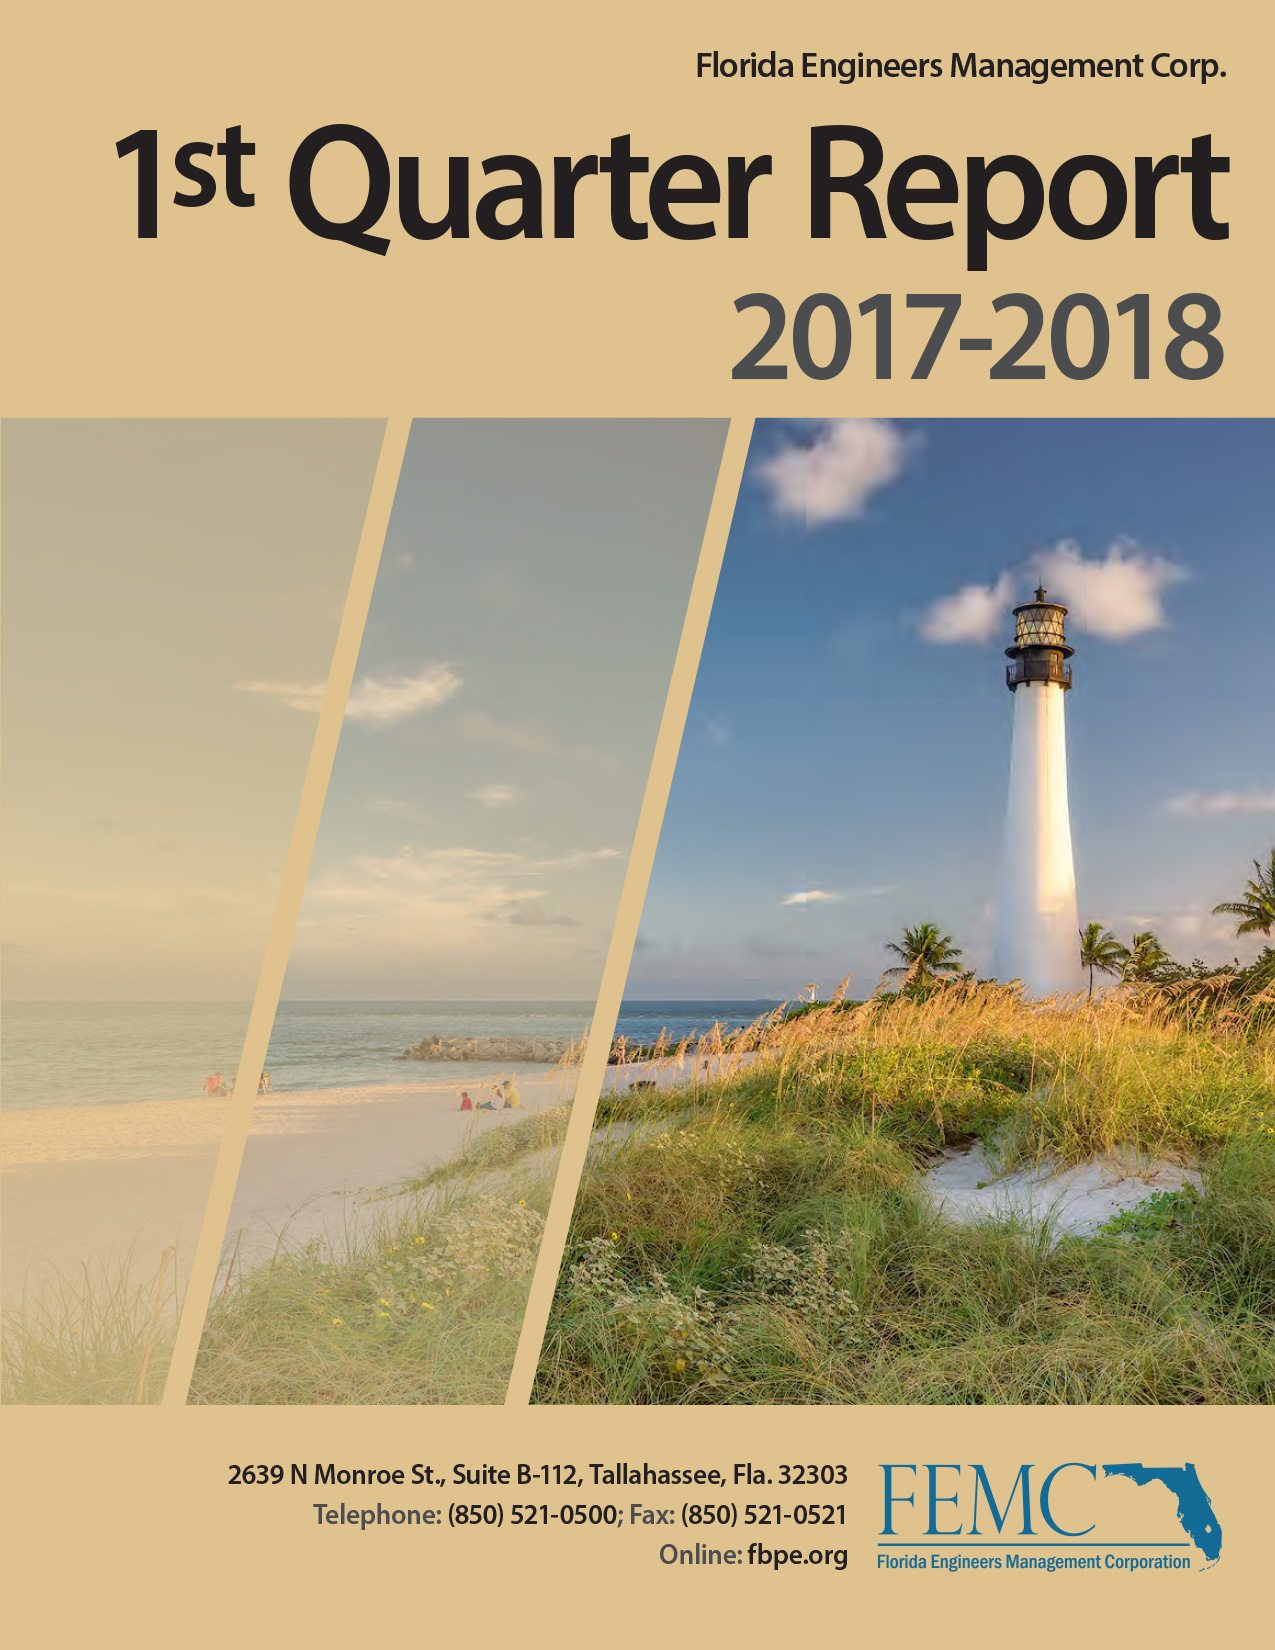 1st Quarter Report 2017-2018